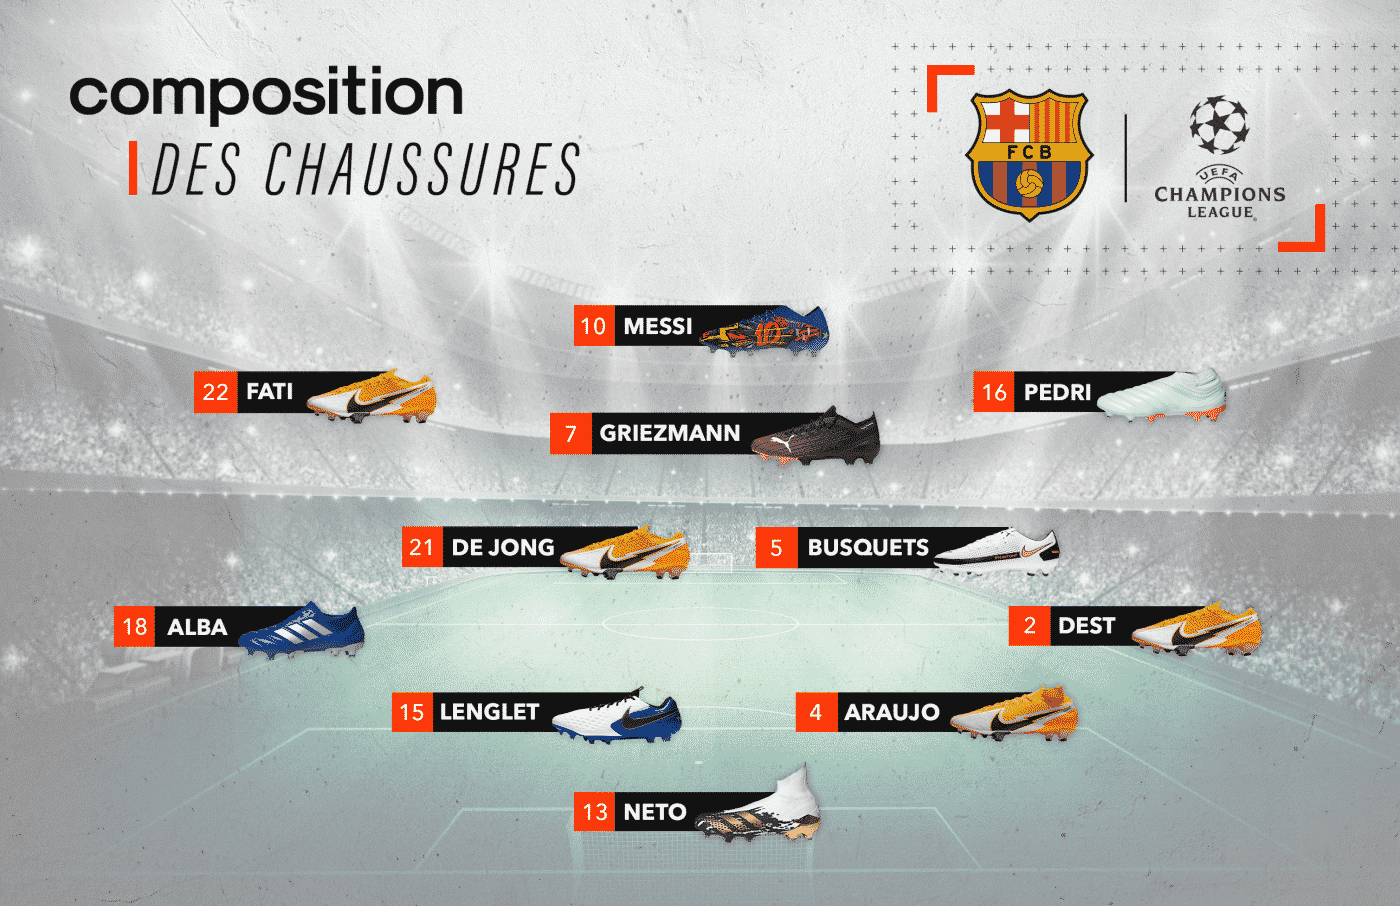 compositions-chaussures-juventus-fc-barcelone(2)